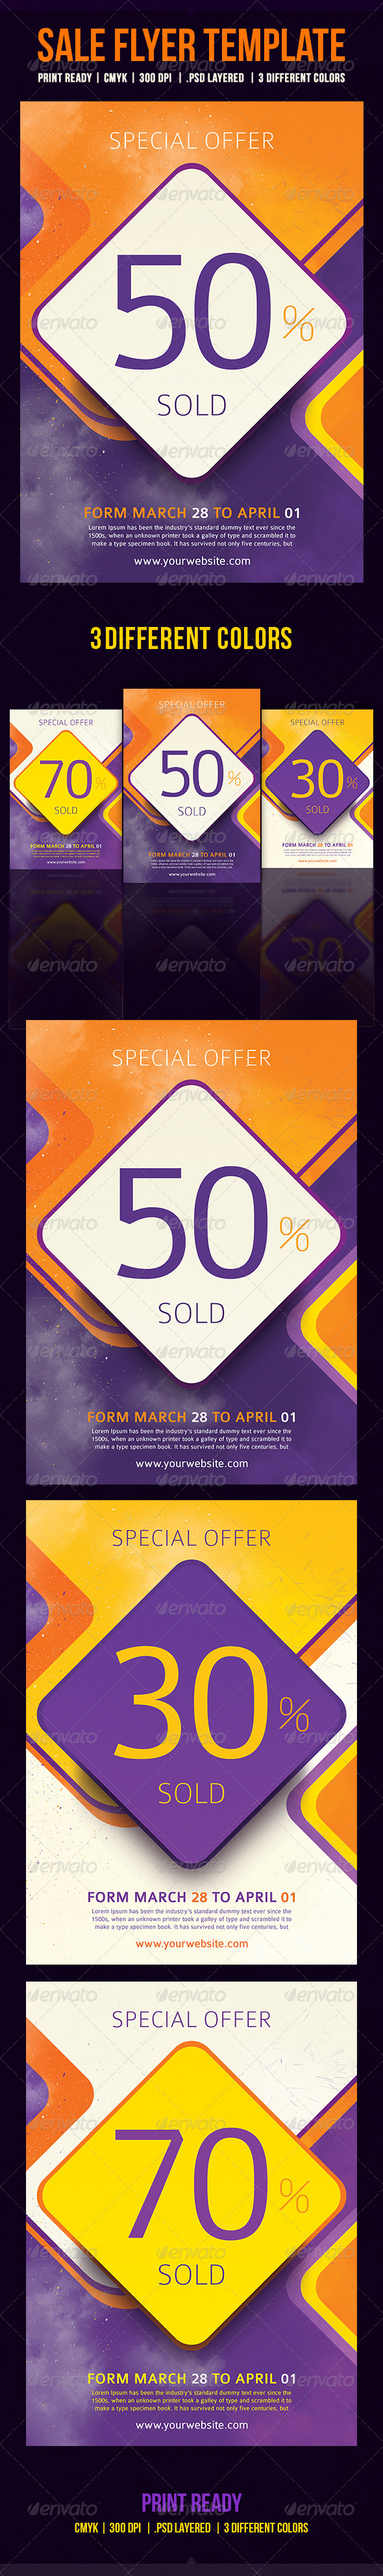 GraphicRiver Sale Flyer Template 8753741